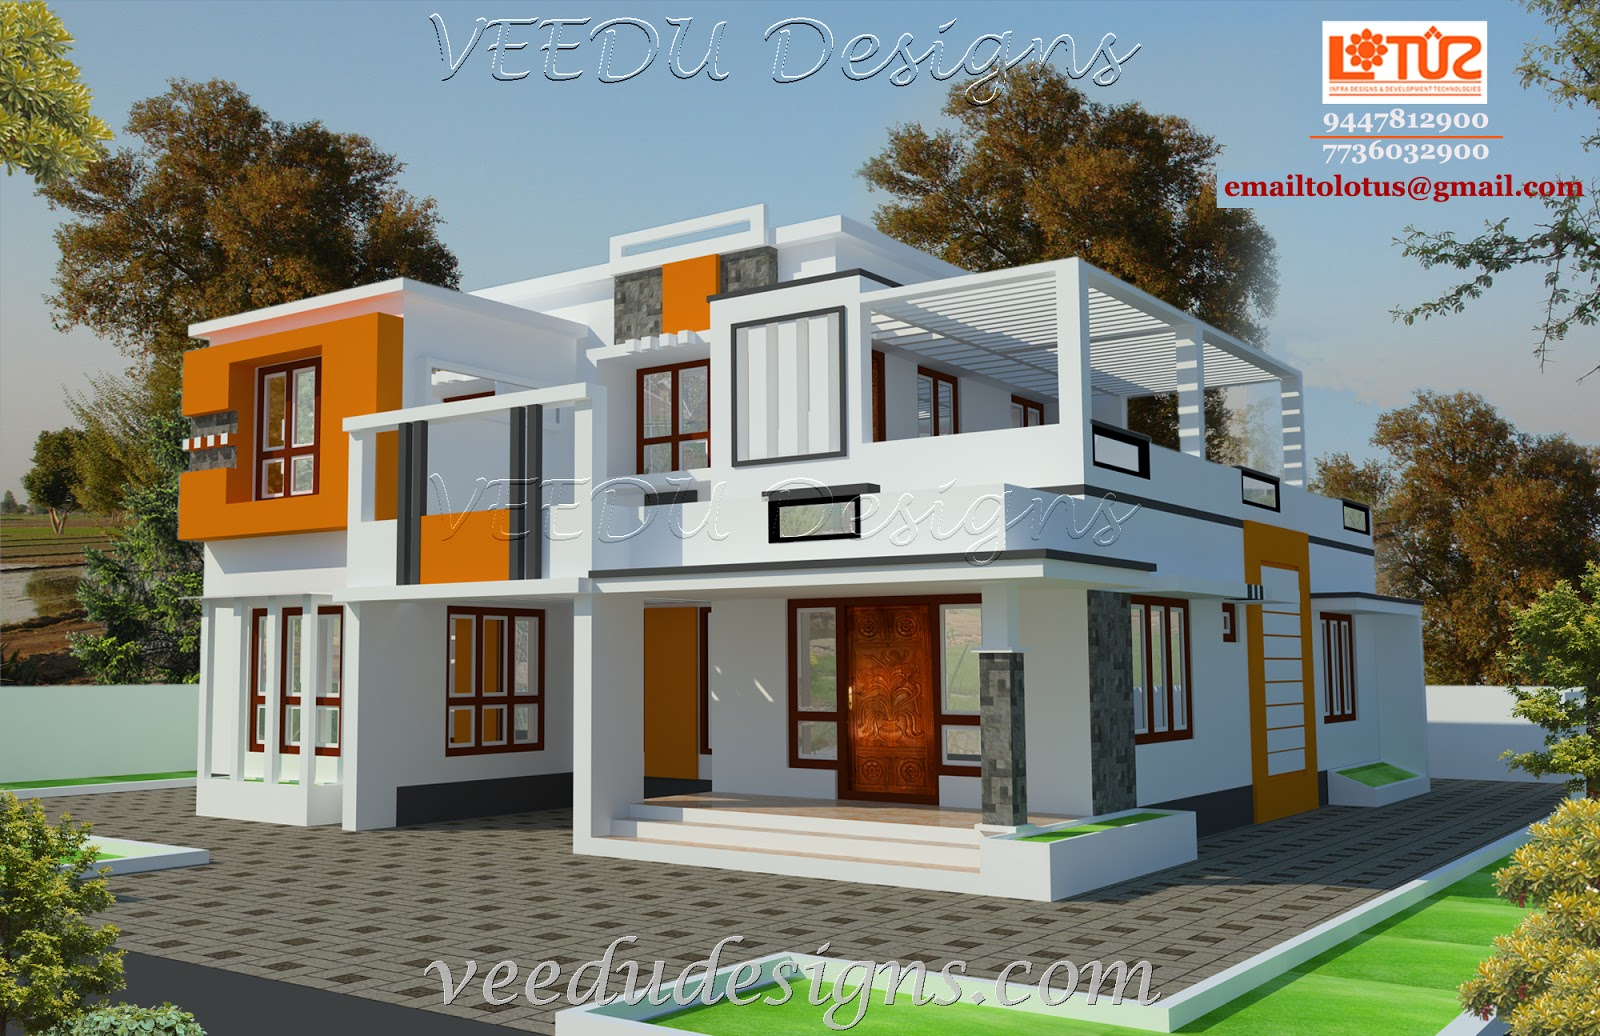 Veedu designs kerala home designs for For home design